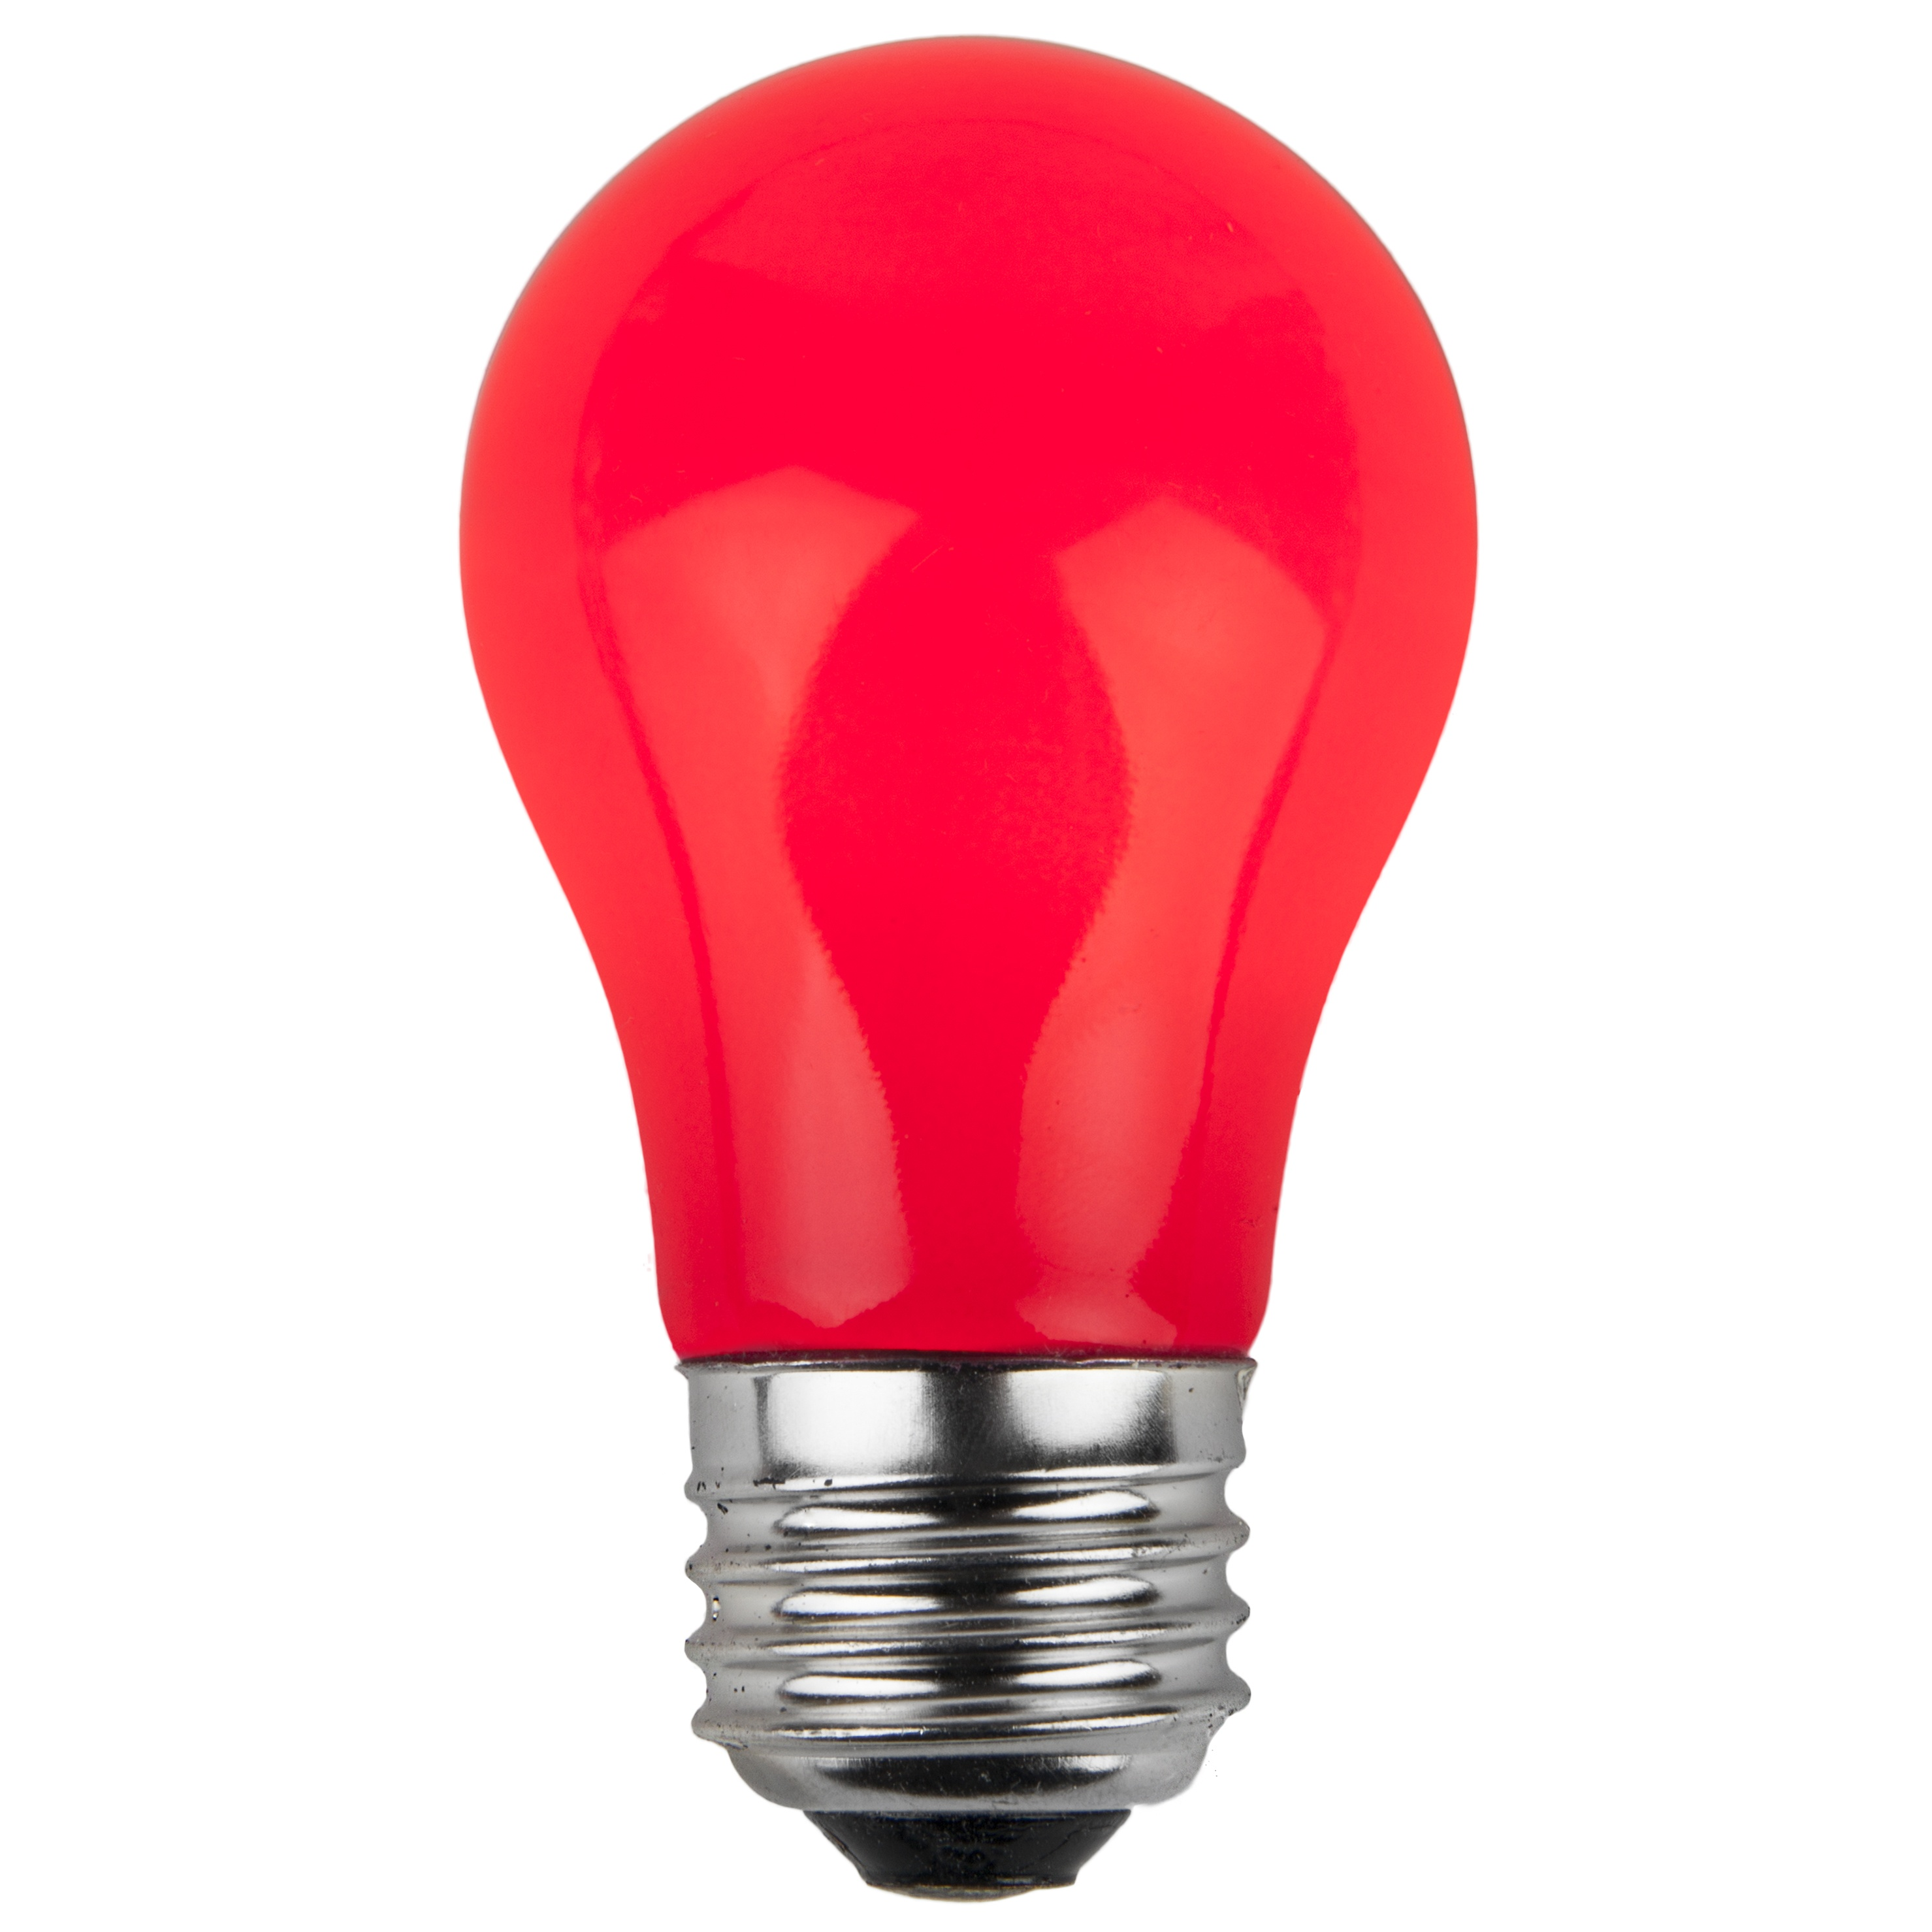 Led Shop Lights >> E26 Party and Sign Bulbs - A15 Opaque Red, 15 Watt ...